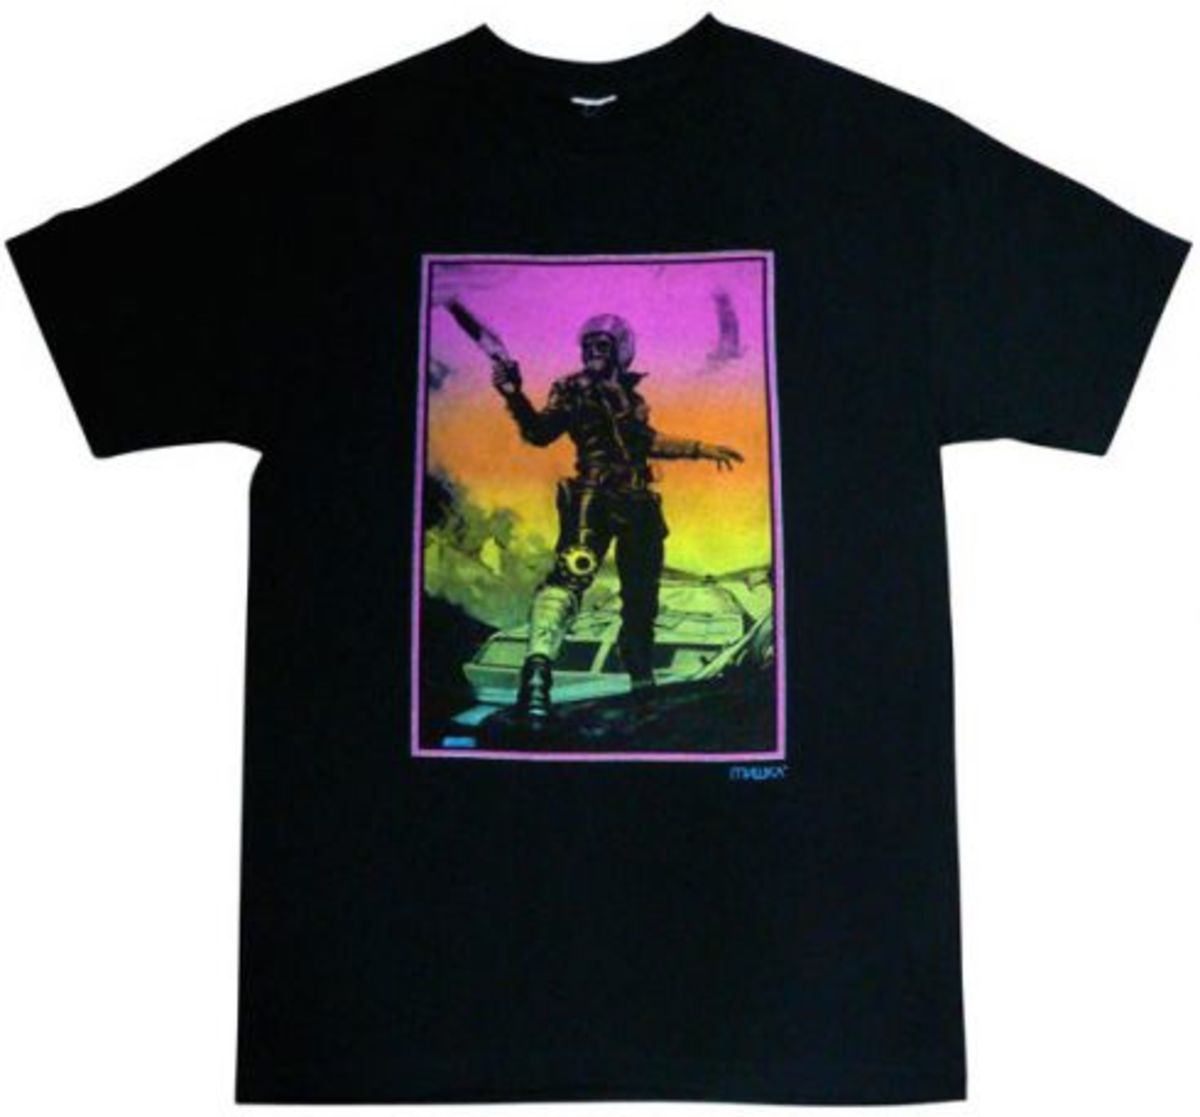 Mishka x Another Inch - Maximum Madness T-Shirt - Front